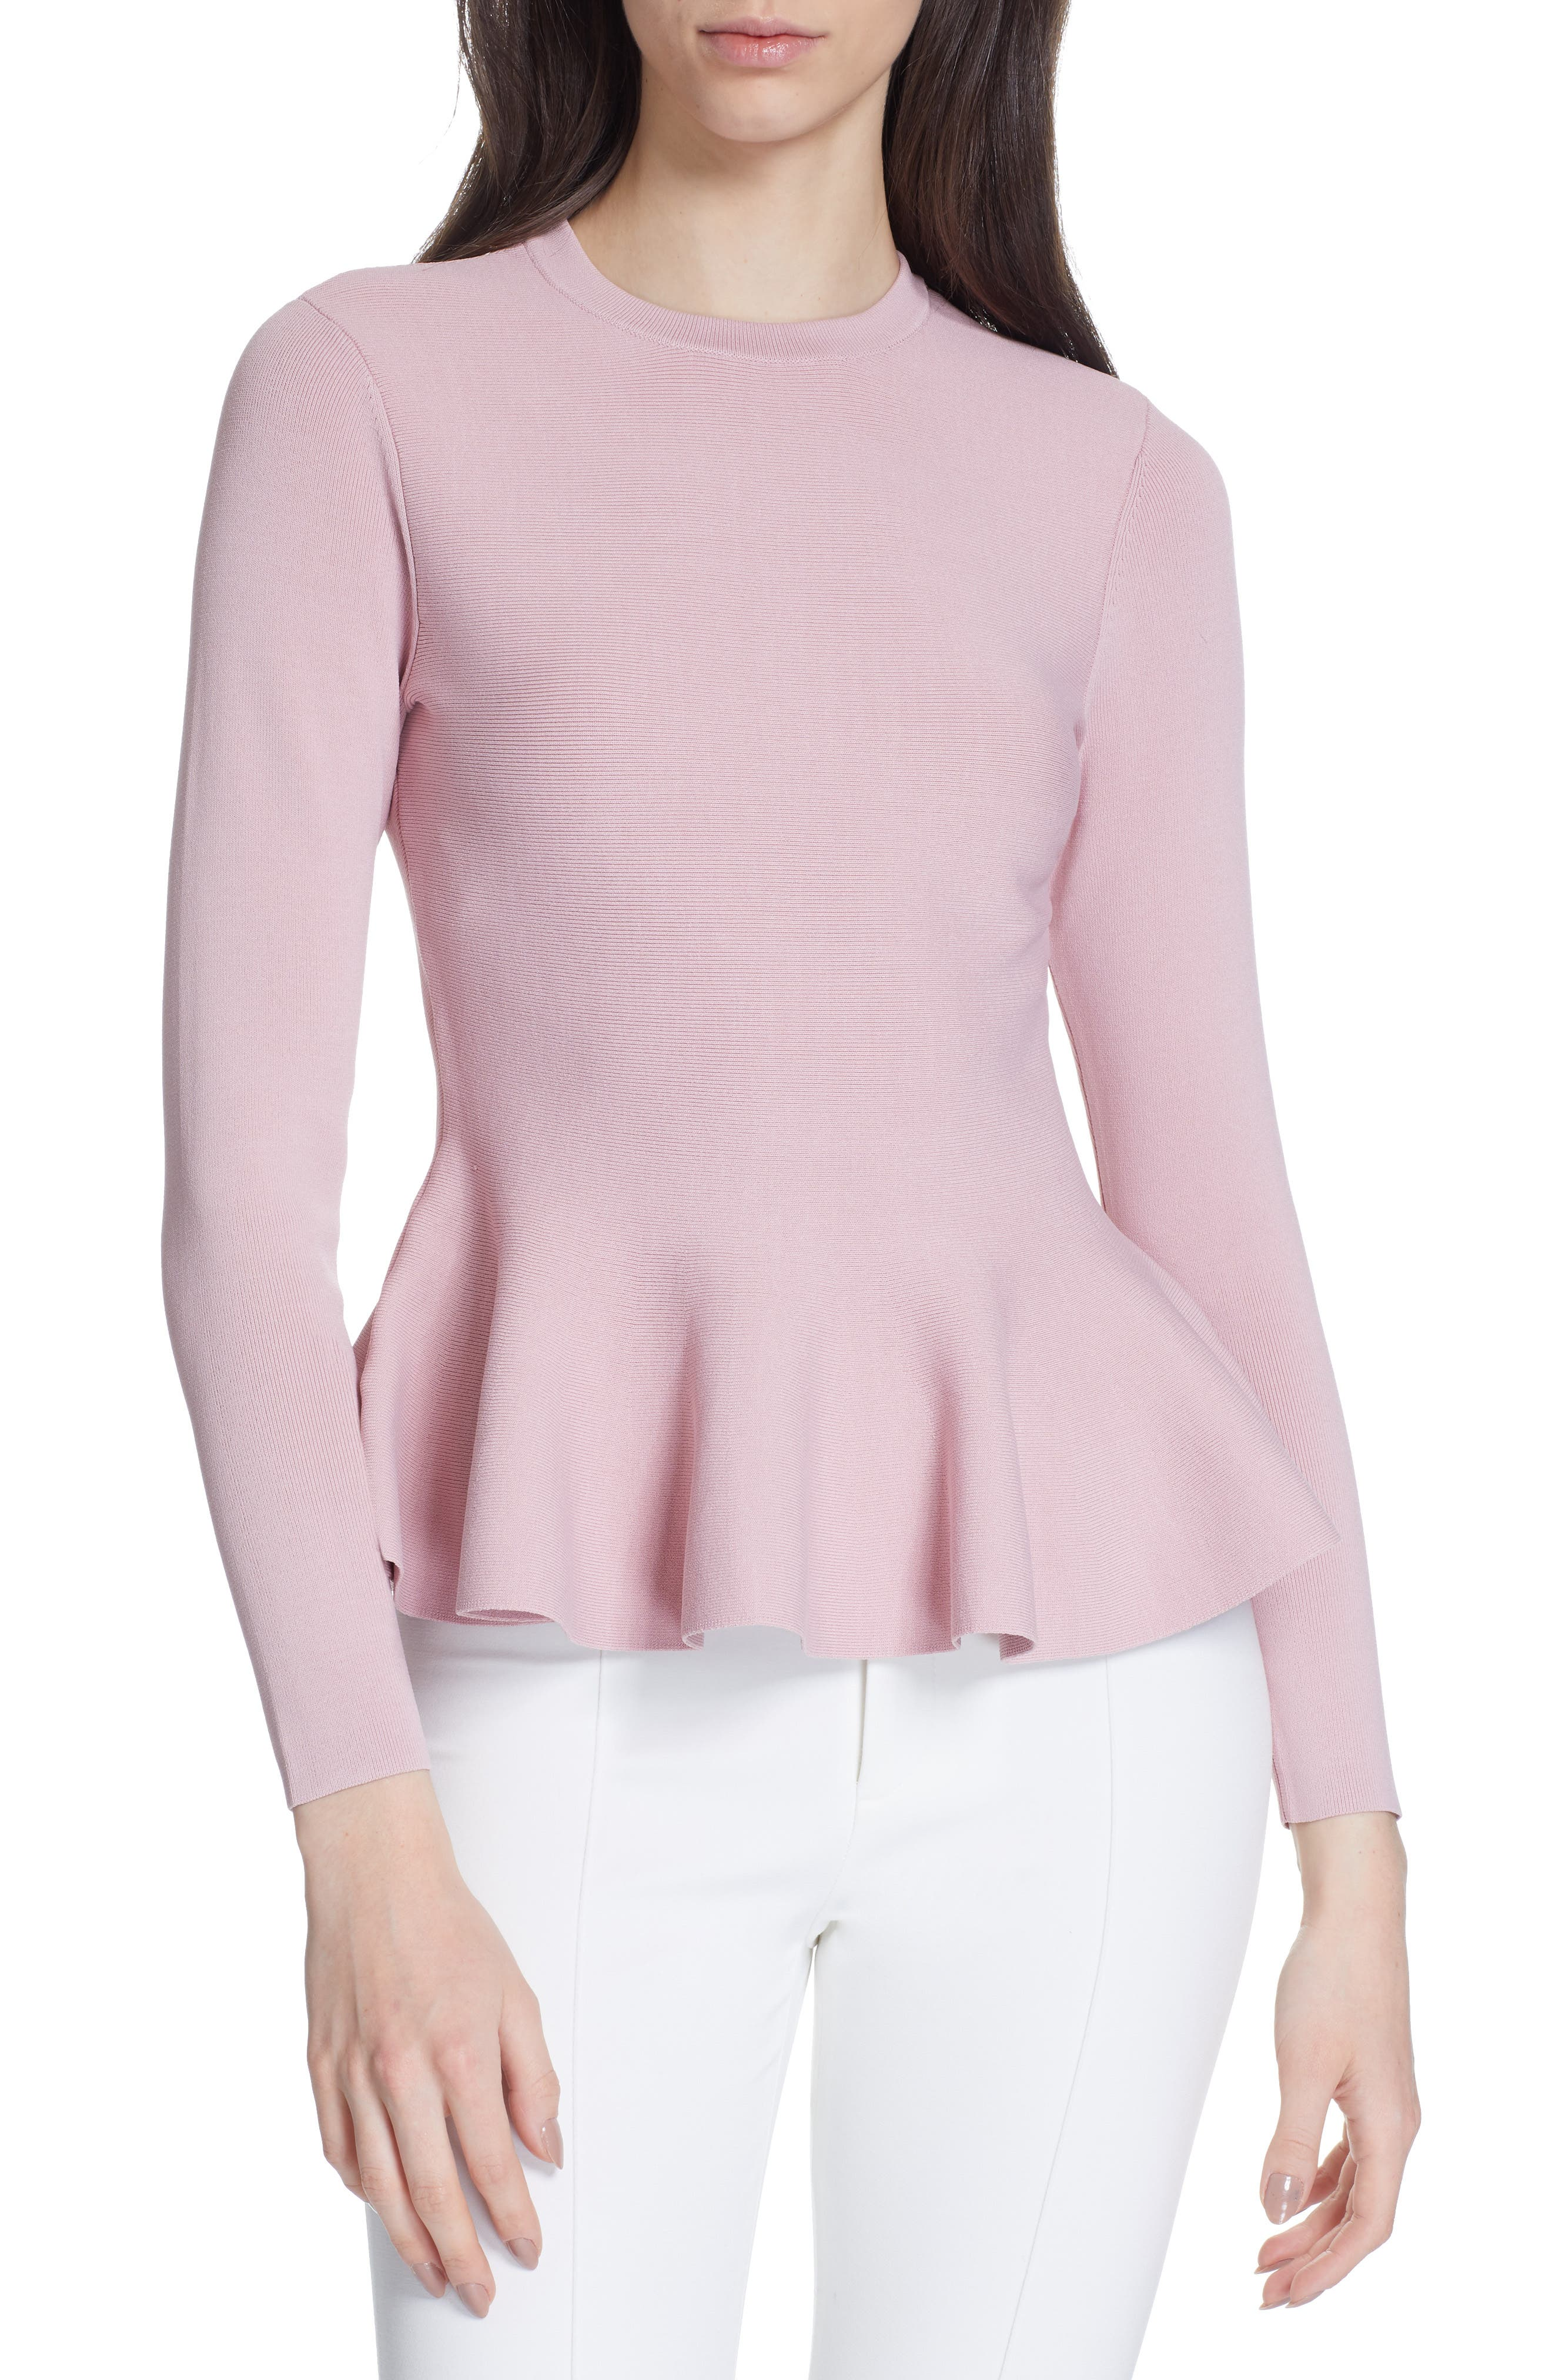 TED BAKER LONDON, Hinlia Peplum Sweater, Main thumbnail 1, color, DUSKY PINK